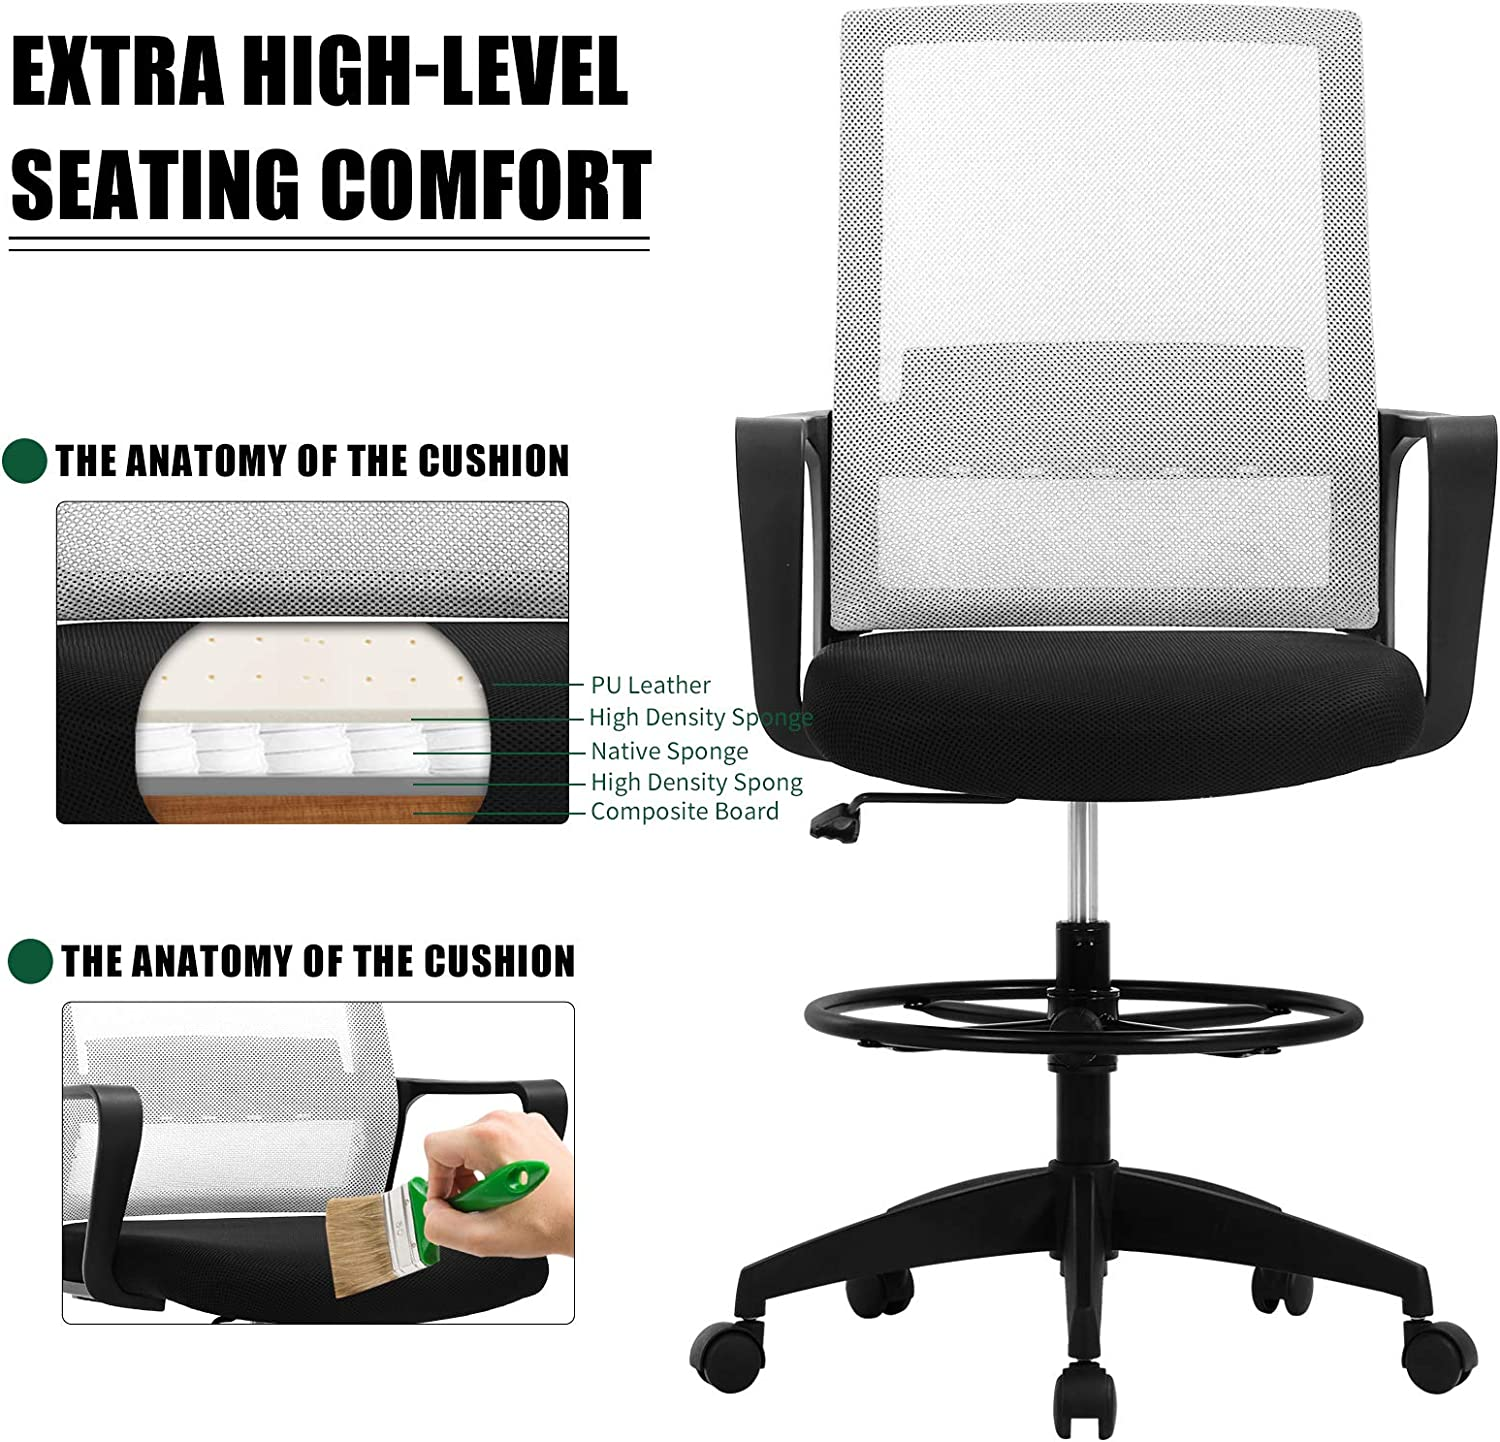 Ergonomic Tall Office Chair with Flip Up Arms Foot Tall Office Chair for Standing Desk Bar High Desk Swivel Rolling Executive Chair Adjustable Height Mesh Drafting Stool US/Stock Drafting Chair